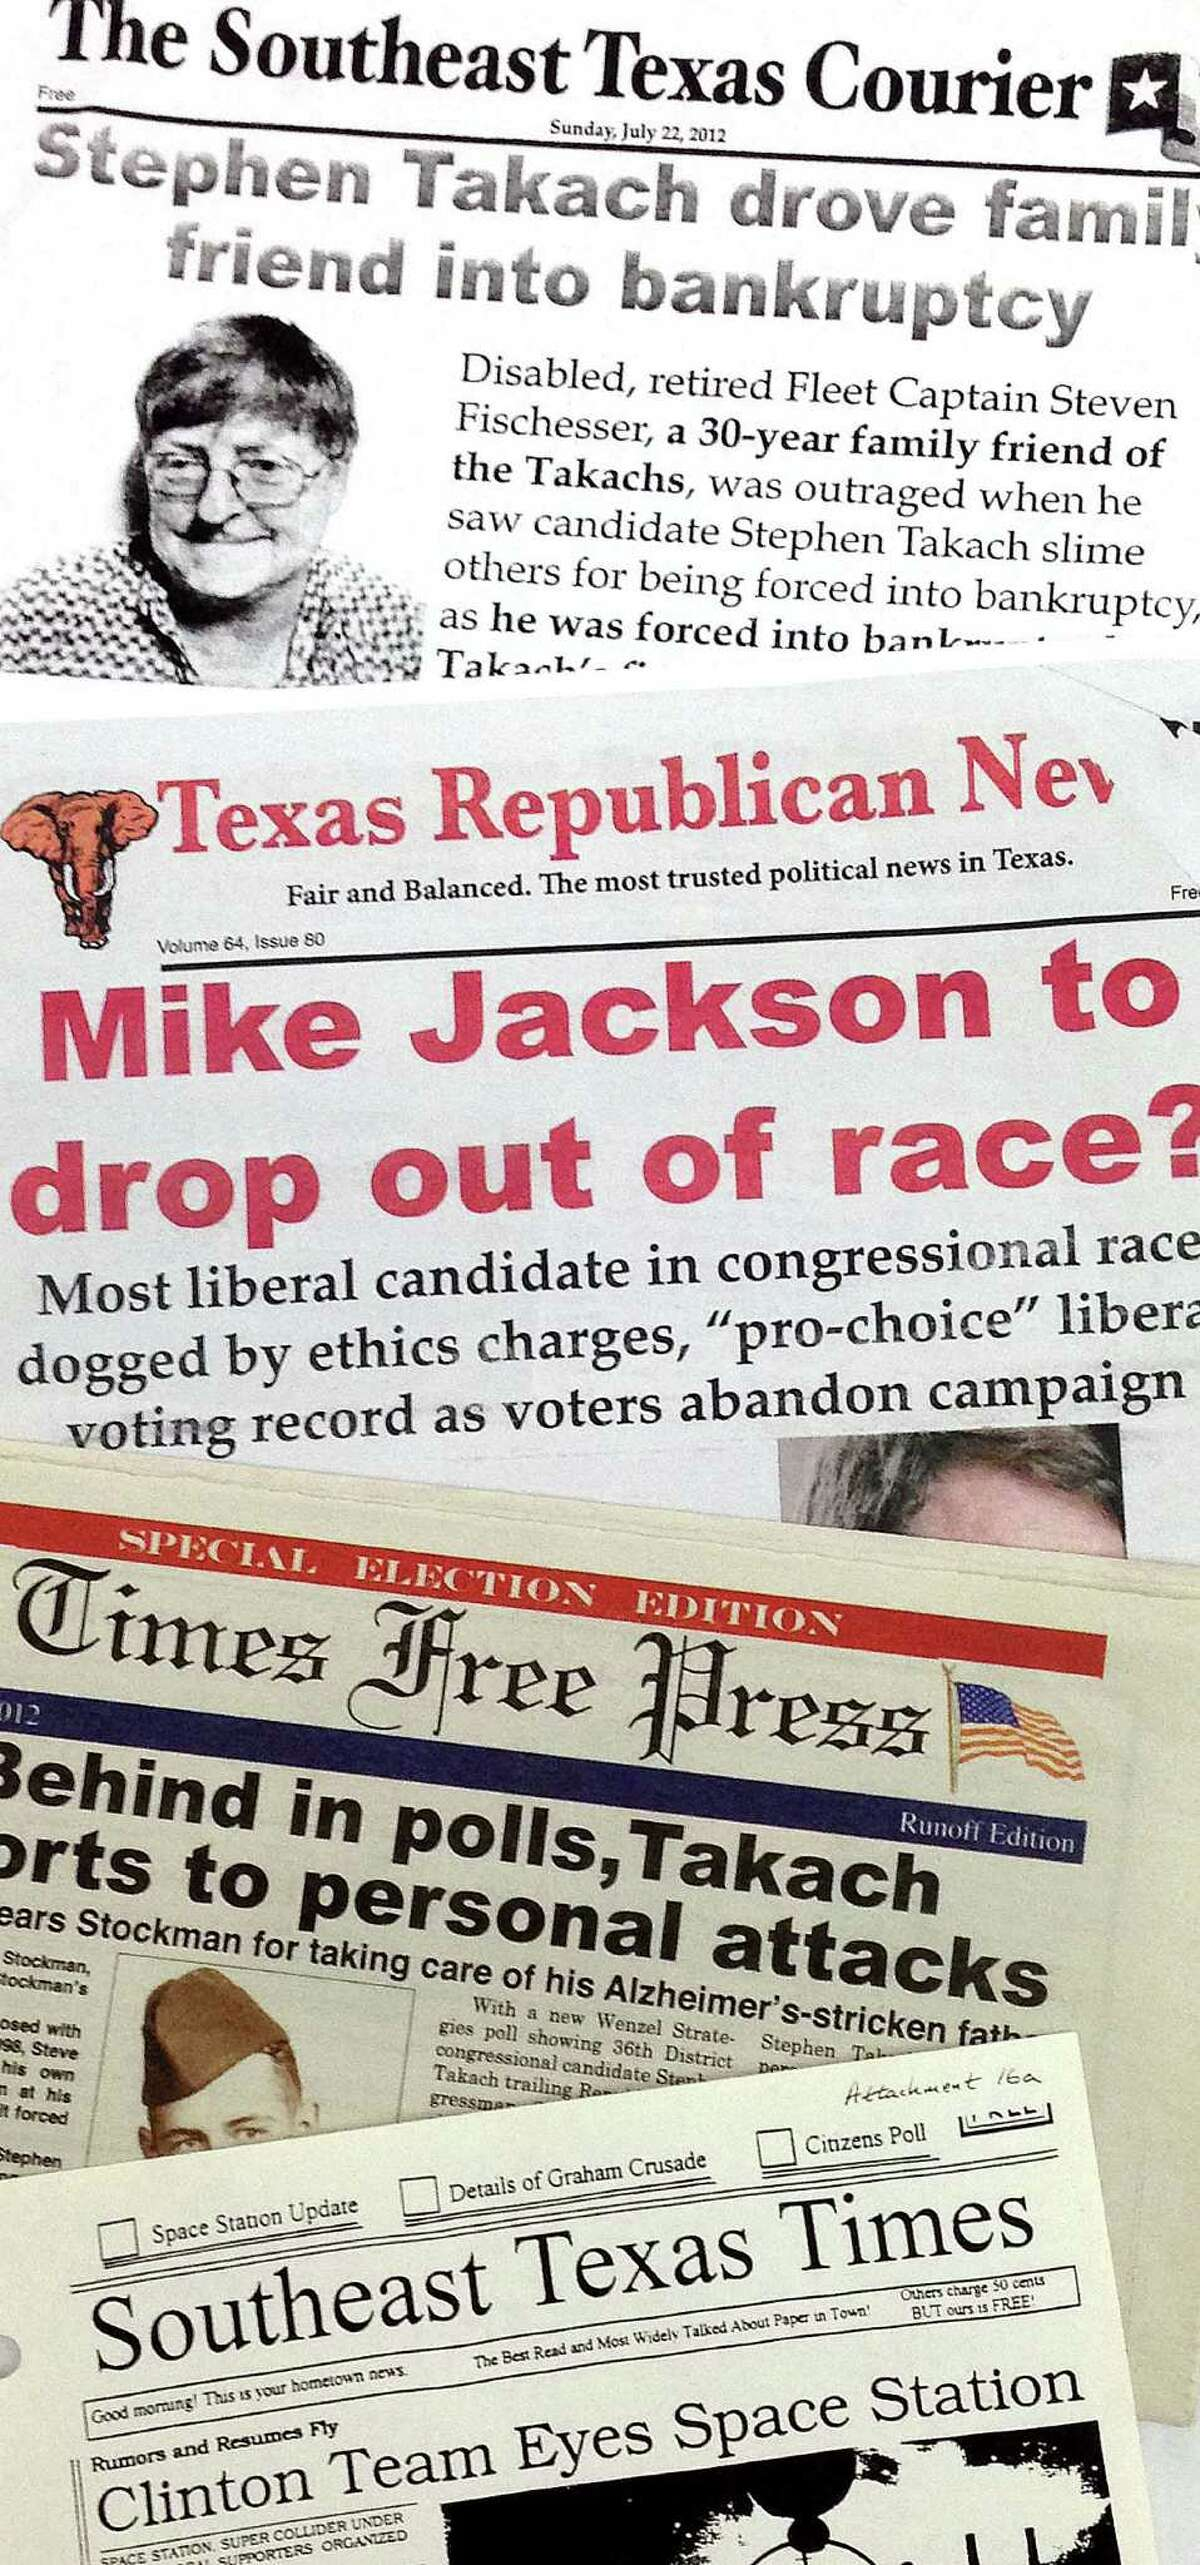 """The Stockman campaign sent out about 400,000 """"newspapers"""" in 2012. The newspapers distributed in 2012 were similar to one that was associated with the campaign in the 1990s called the Southeast Texas Times. A copy of the 1990s publication is at the bottom of this photo, samples of others from 2012 are pictured above."""